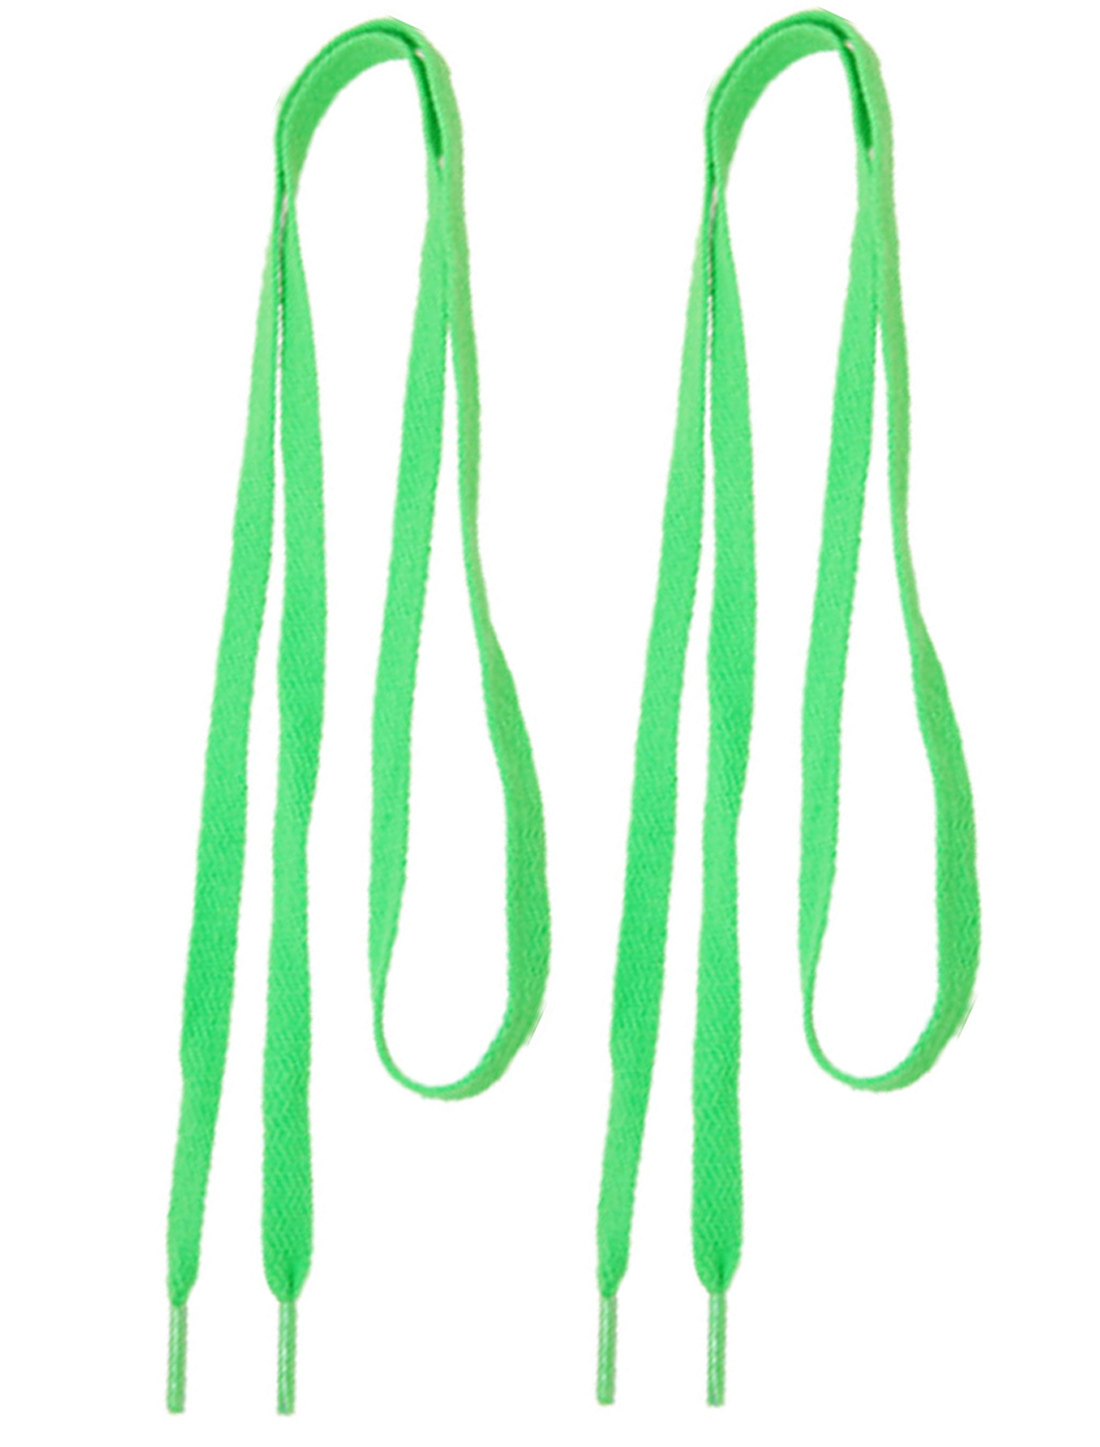 "43"" Length Superior Length Flat Green Laces Shoestrings 2 Pcs"